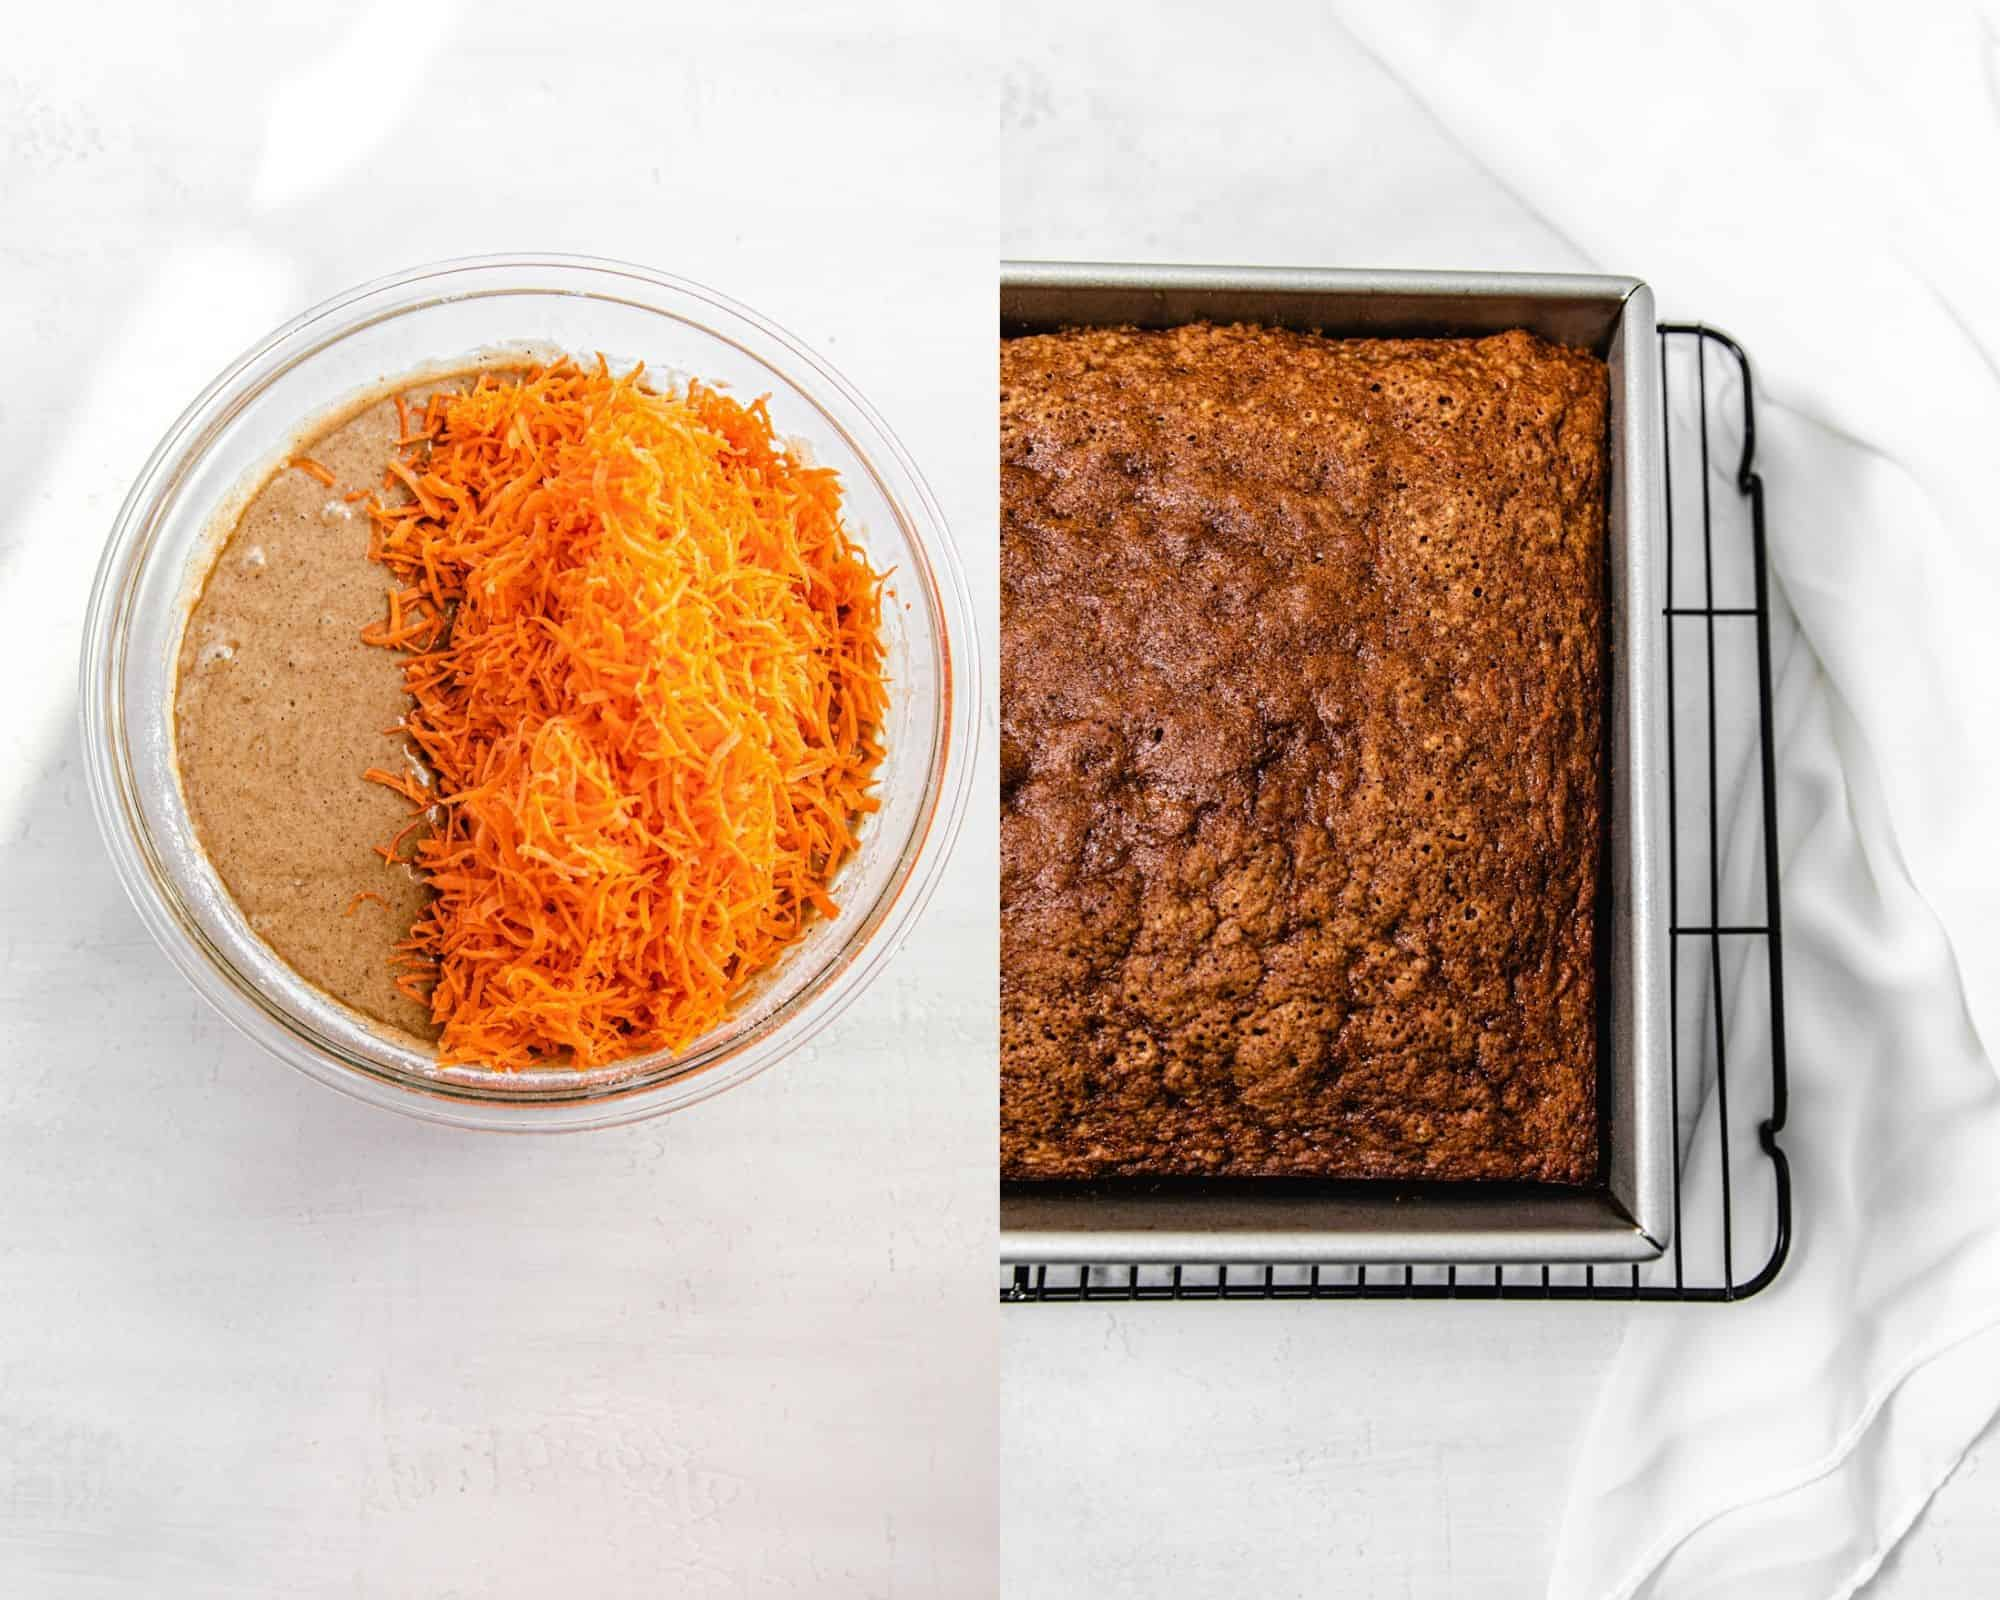 shredded carrots in bowl of cake batter and baked cake in a pan on the right